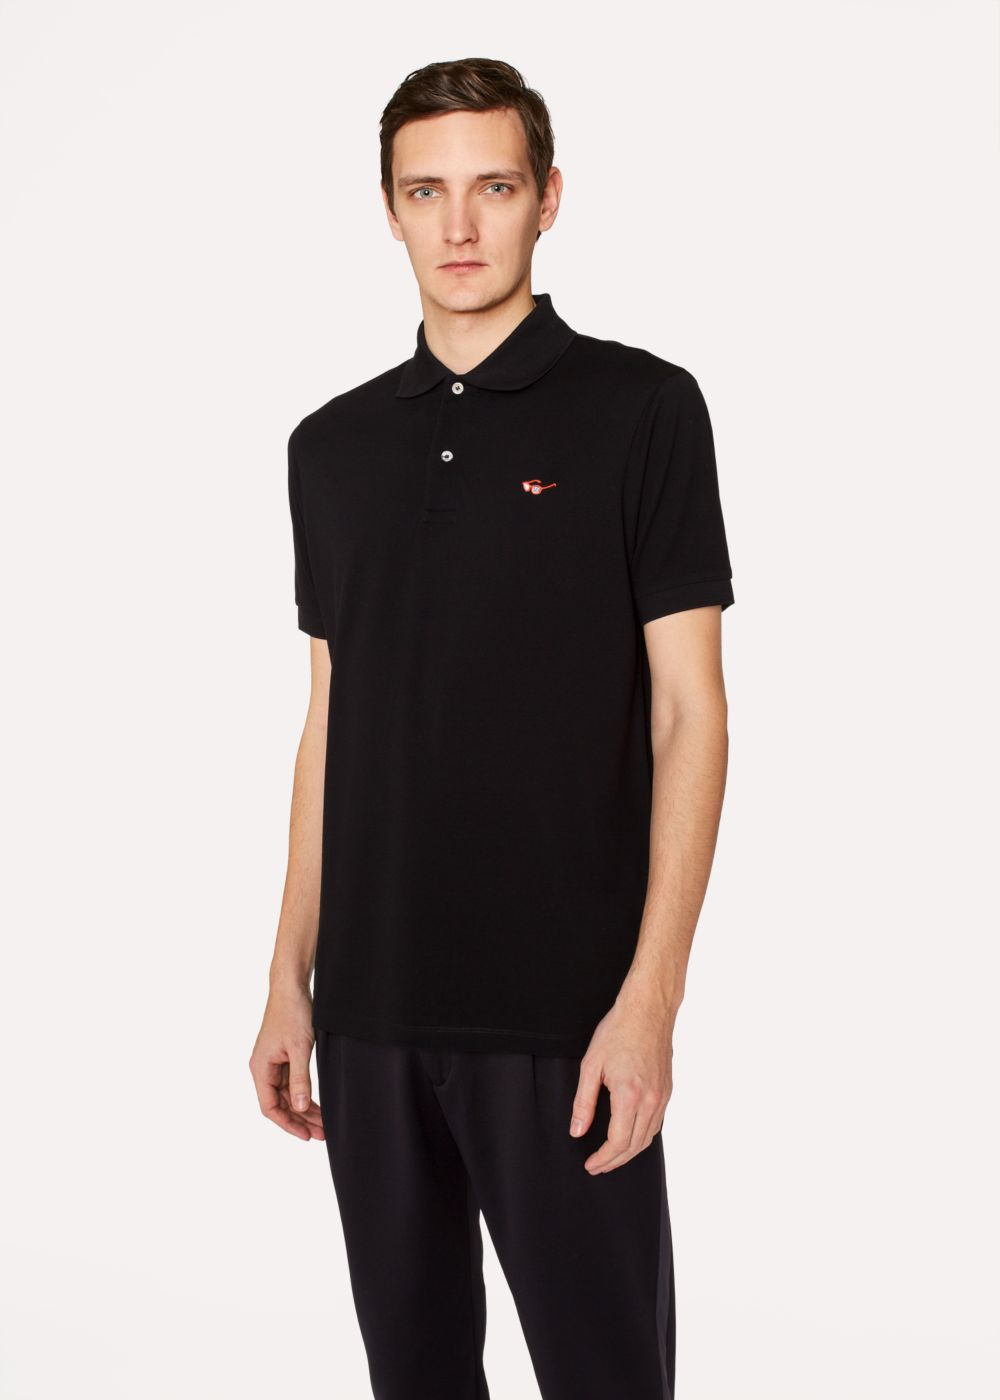 Paul Smith Men's Slim-Fit Black Cotton-Piqu Polo Shirt With Embroidered 'Sunglasses'